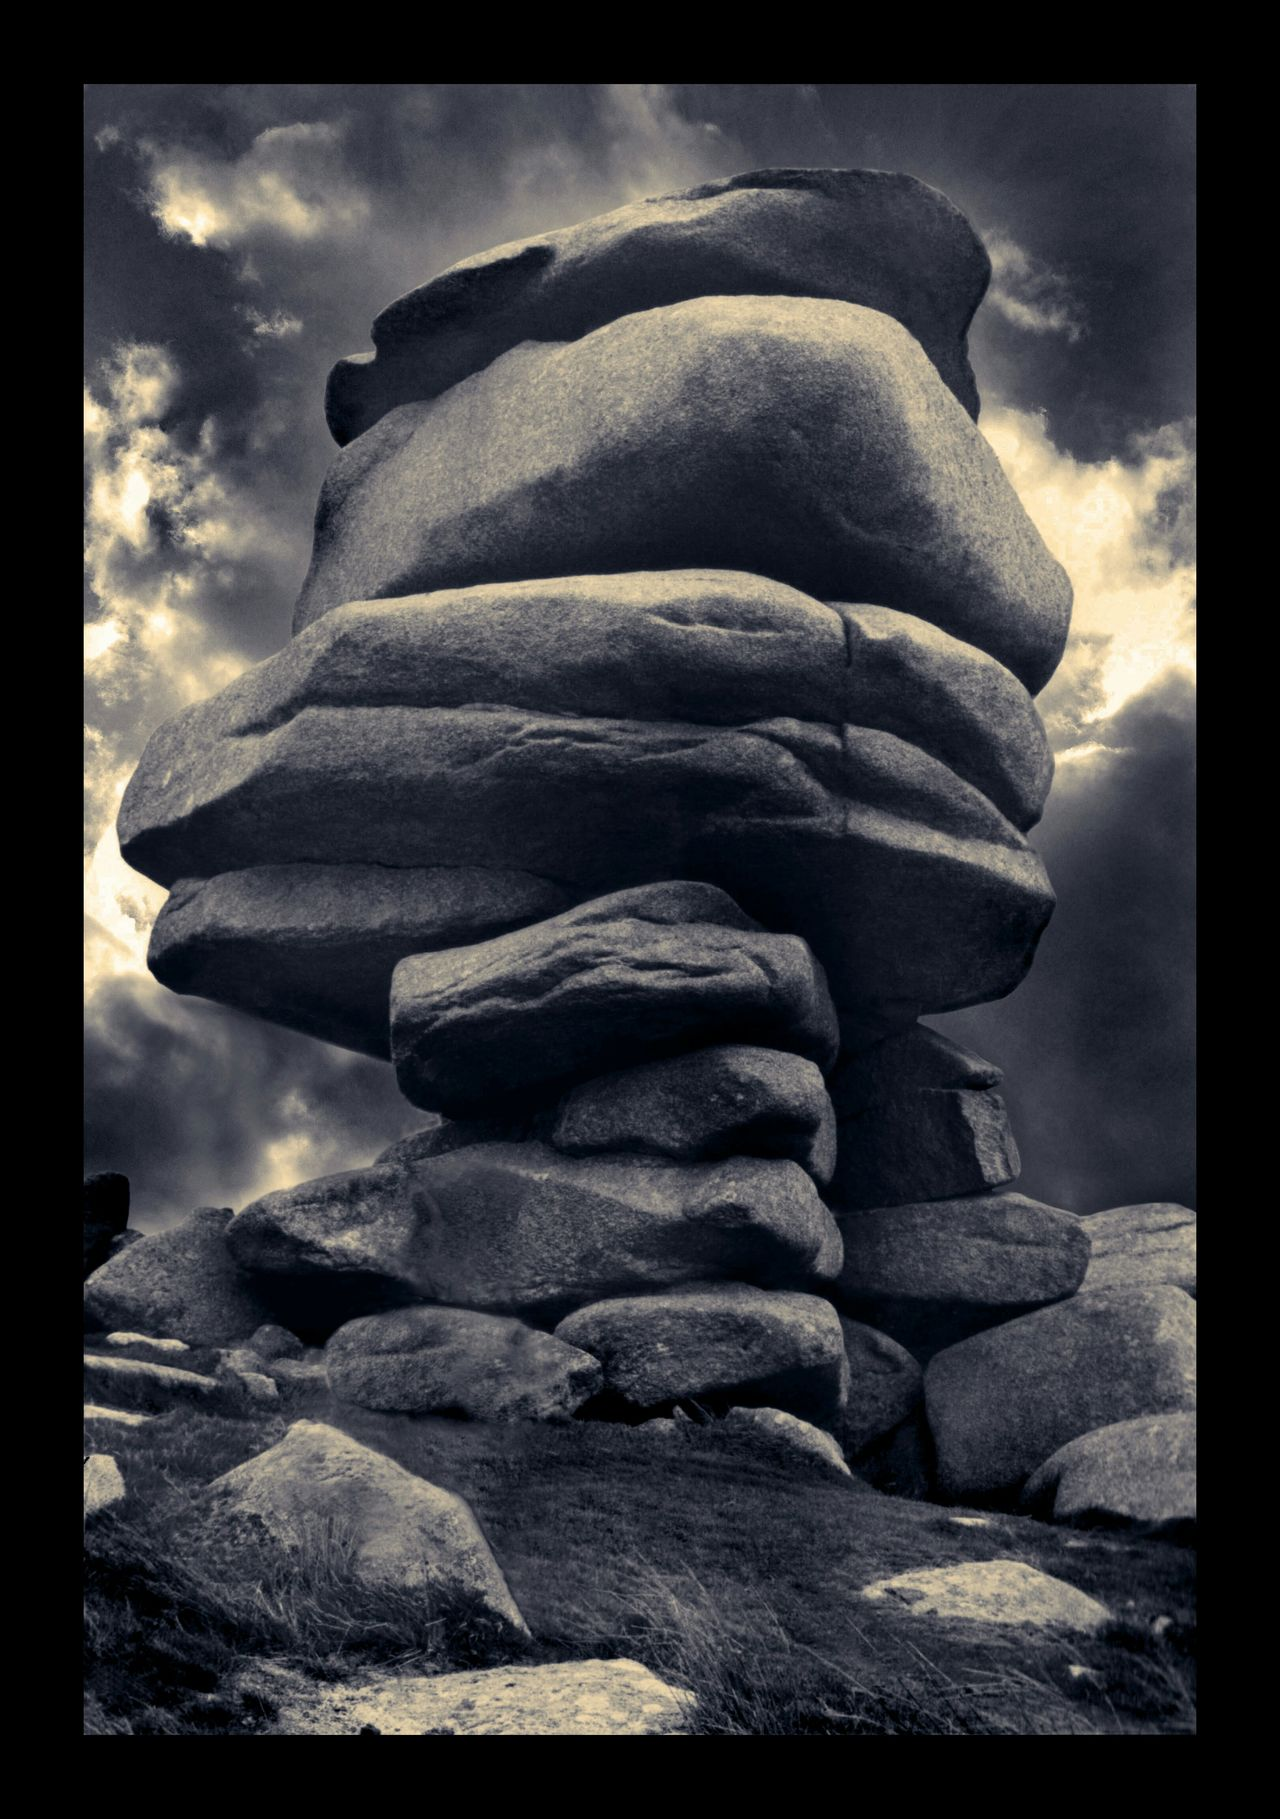 The Cheesewring. Cheesewring Minions Moors The Hurlers Cornwall Stones Stones N Rocks Momochrome Looking Up Cross Process Monochromatic Things Organized Neatly